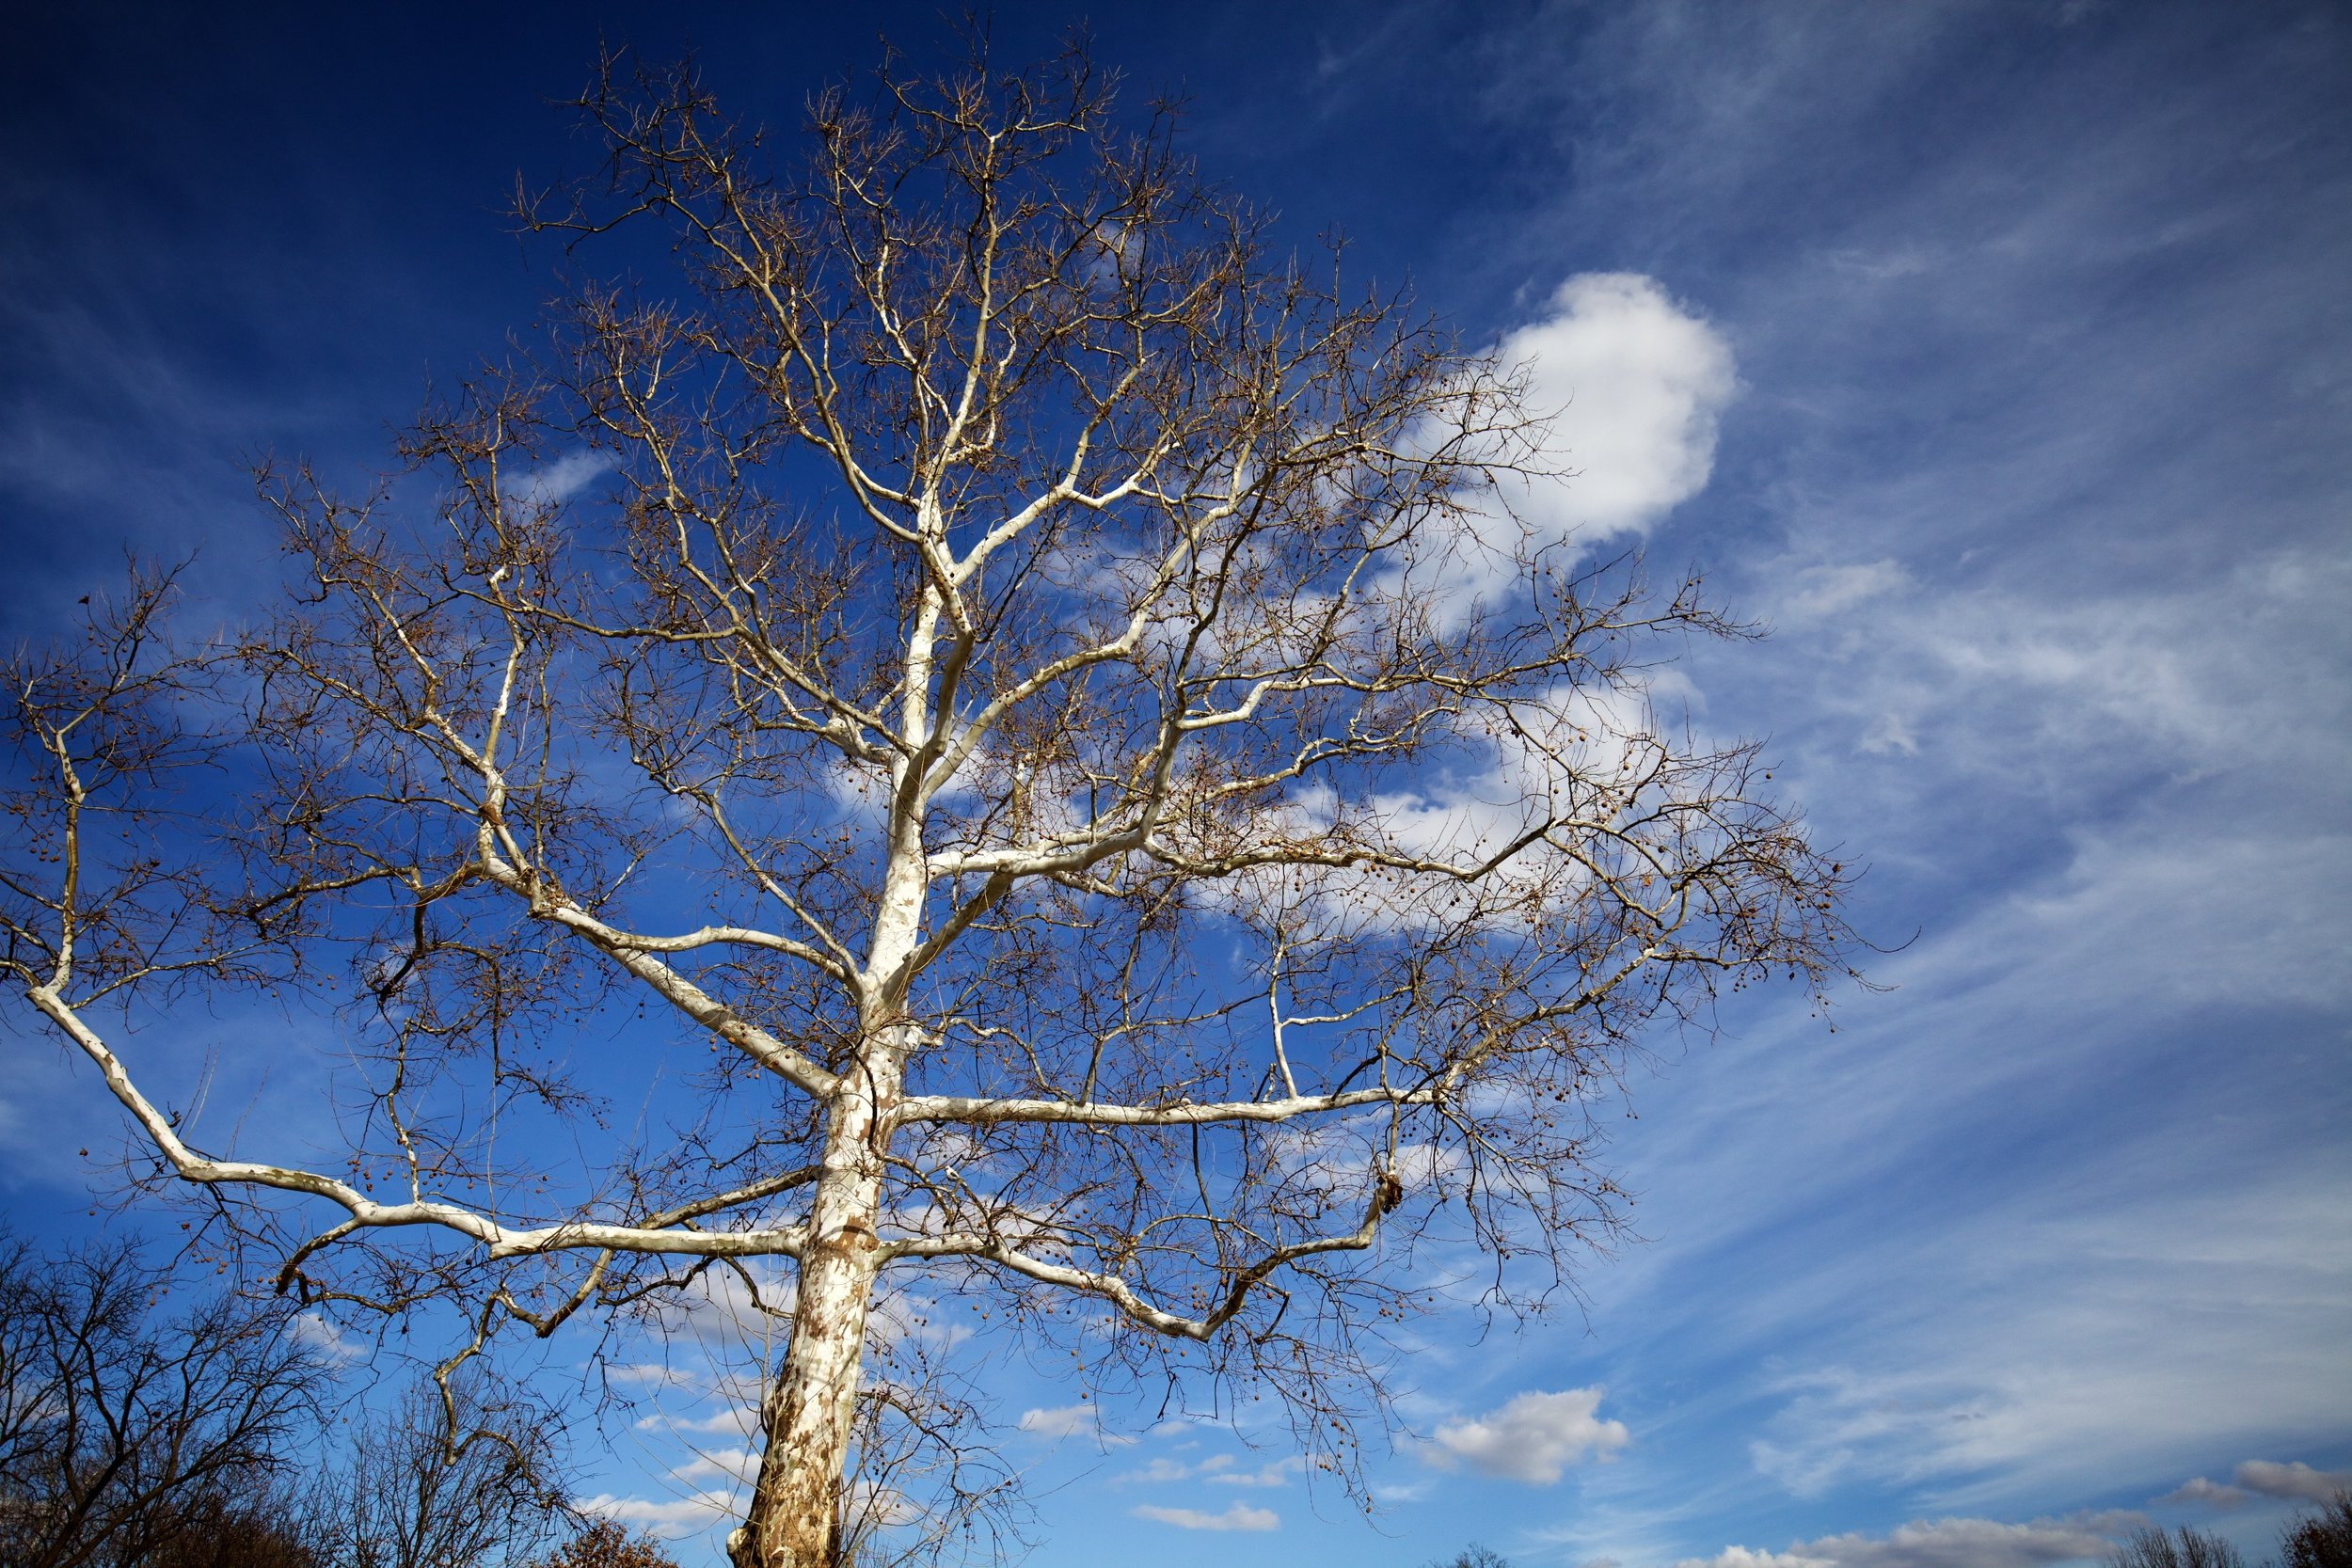 Tree and sky - it doesn't get much simpler than that.